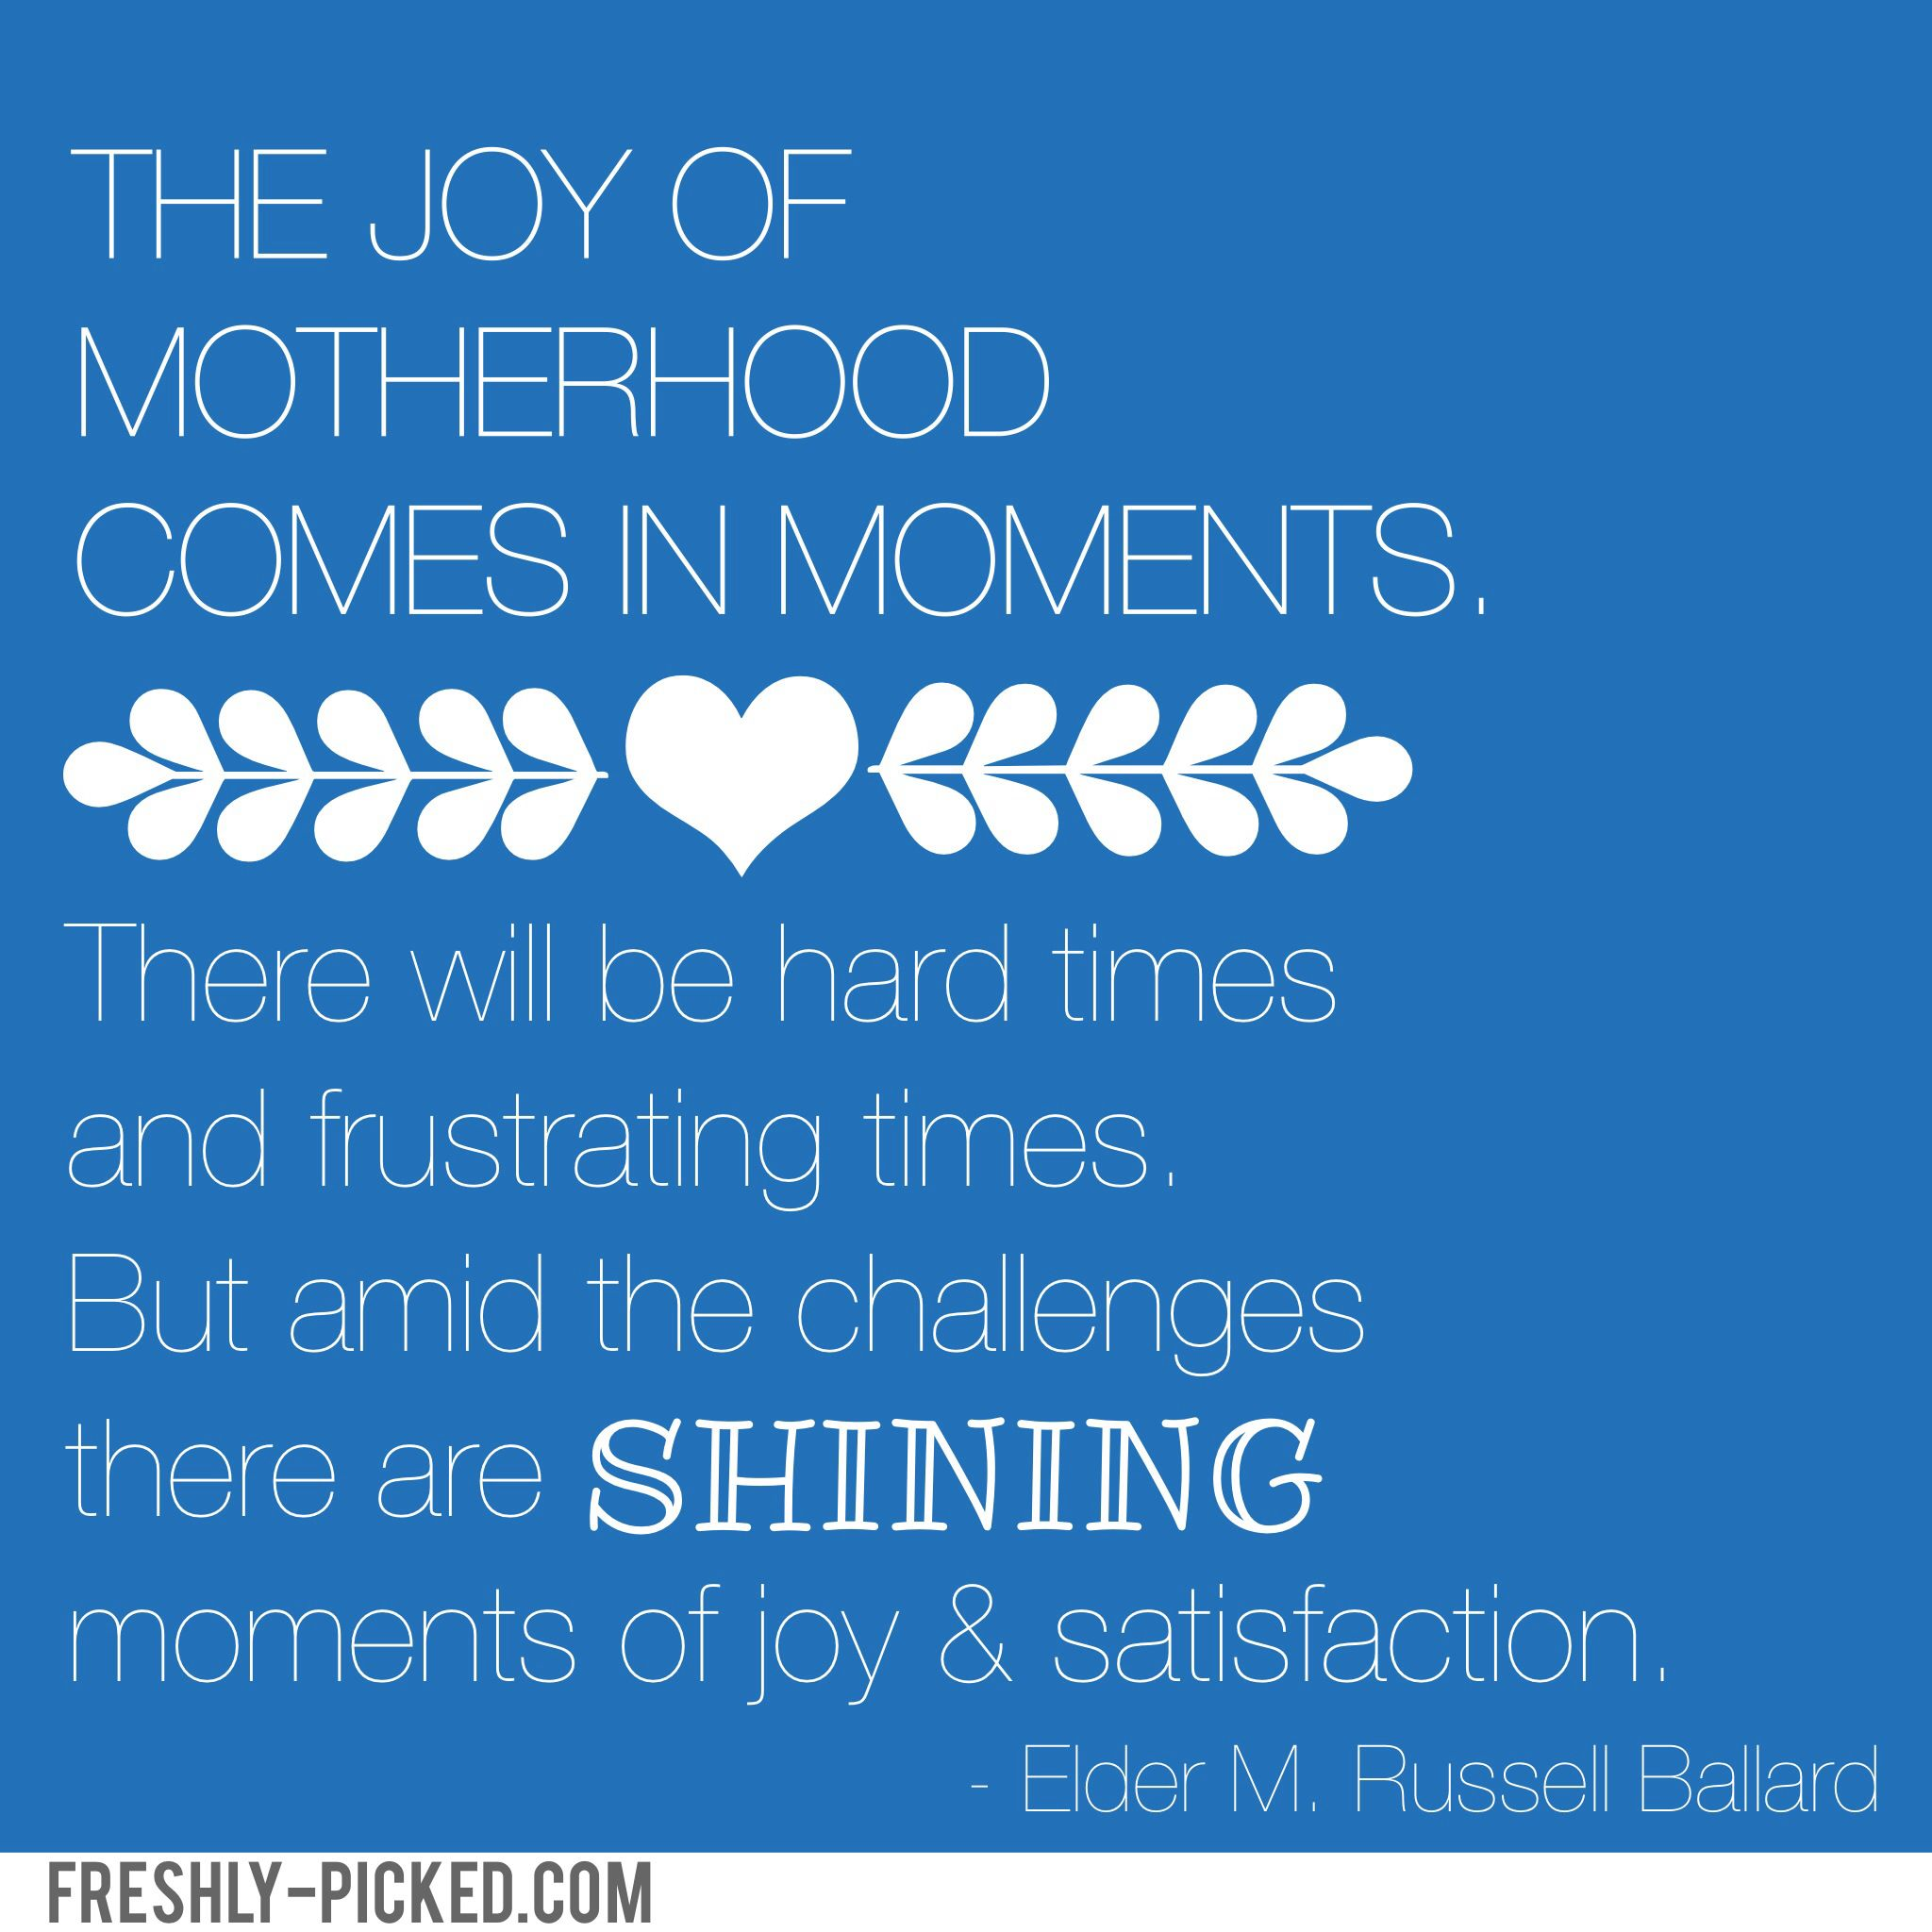 10 Positive Quotes About Marriage And Motherhood